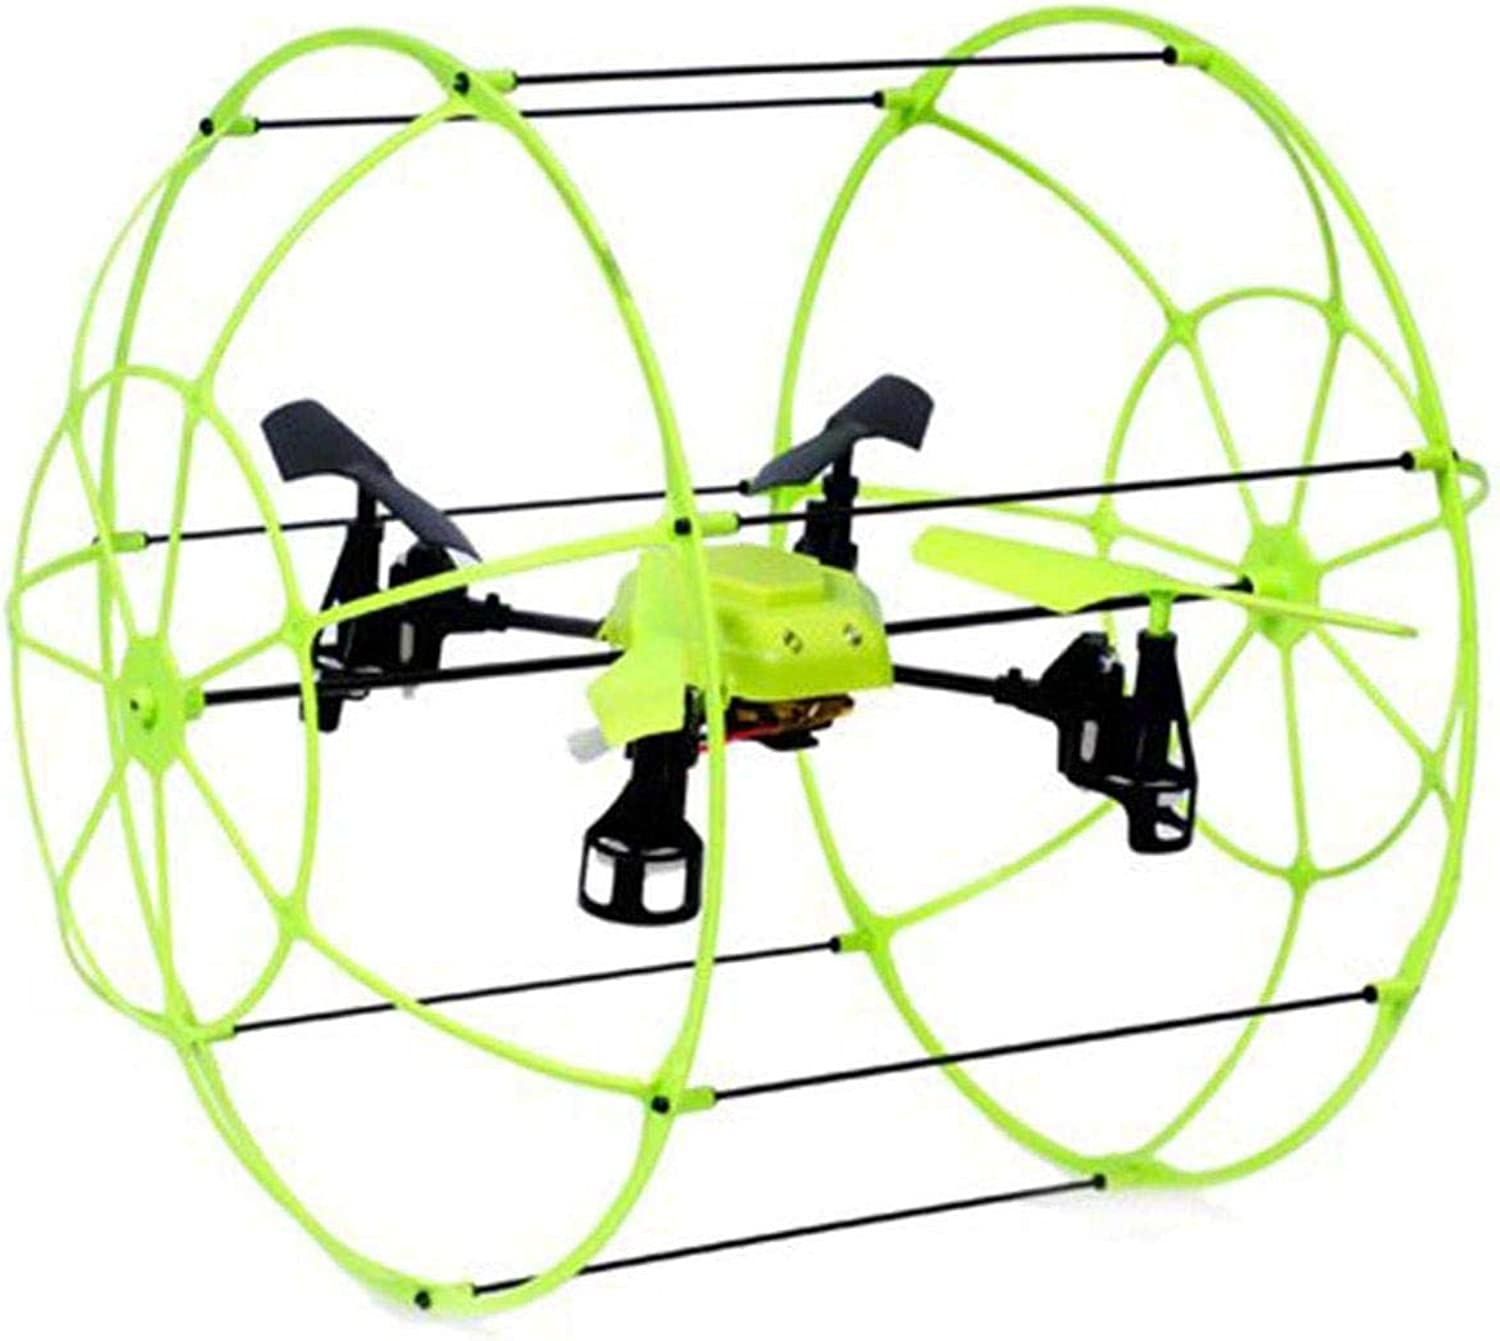 Sky Runner  Quadcopter Aerocraft.  2.4 GHz Caged Drone that Runs Along Floors, Ceilings, Climbs Walls AND Flies up to 100 ft away